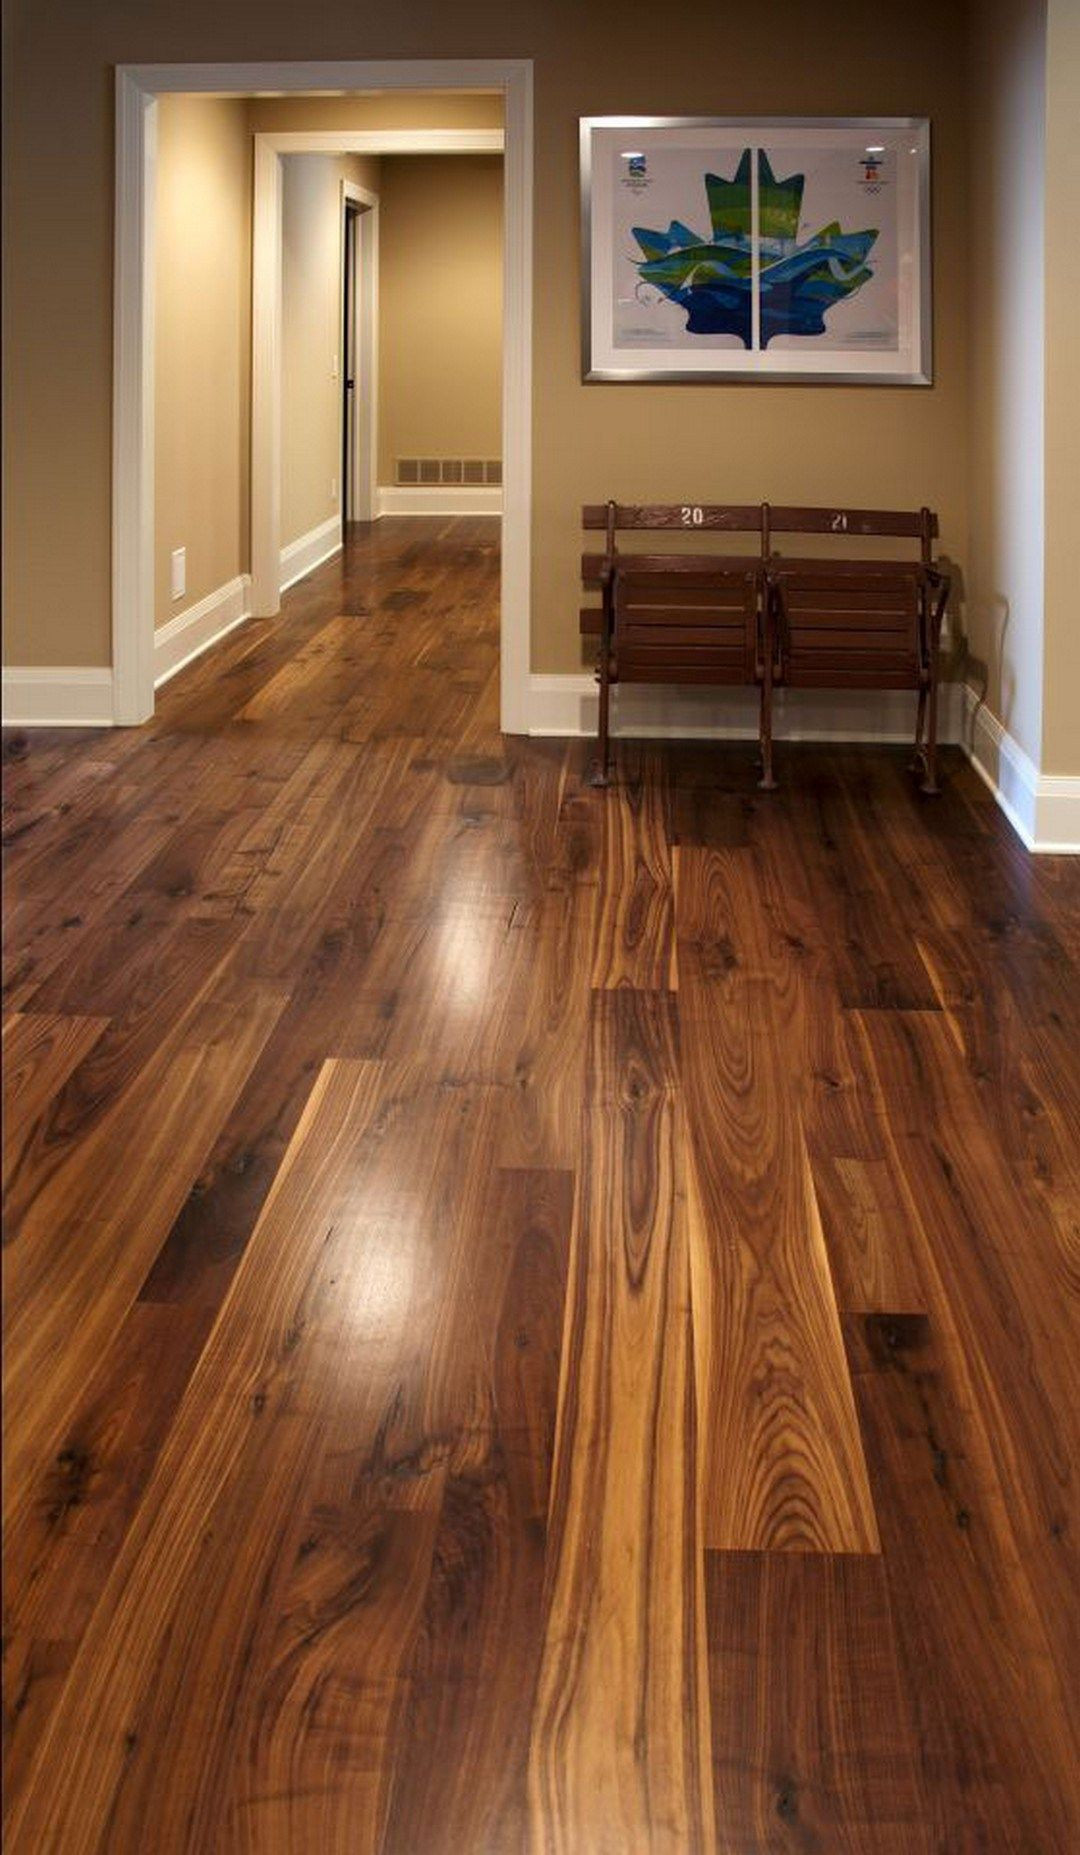 engineered hardwood flooring phoenix of hardwood flooring phoenix 60 perfect color wood flooring ideas with hardwood flooring phoenix 60 perfect color wood flooring ideas pinterest